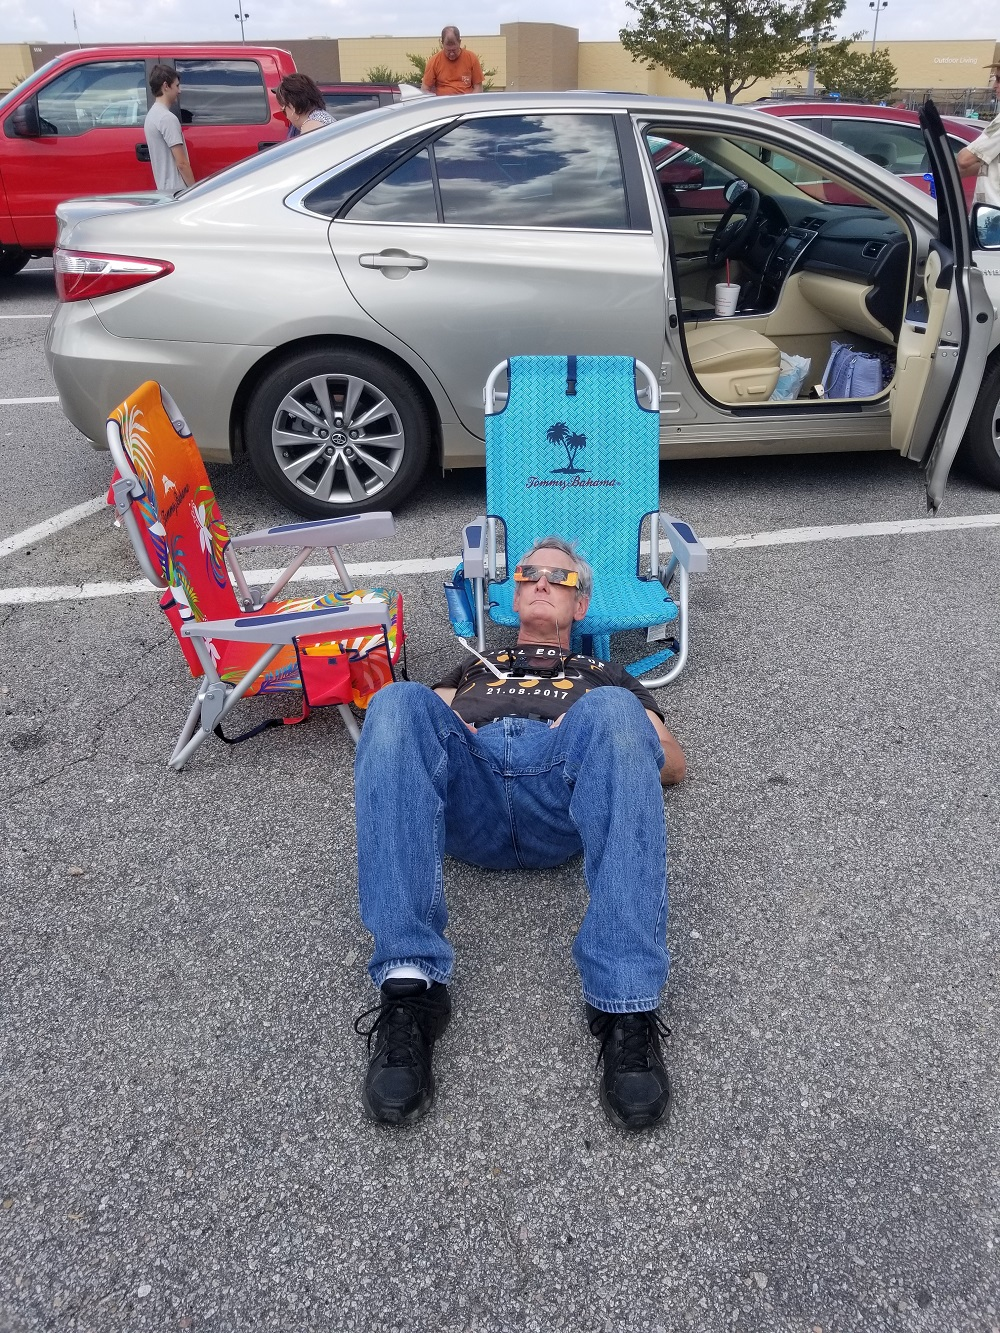 Ken Wright in Lexington SC Walmart Parking Lot Observing Solar Eclipse